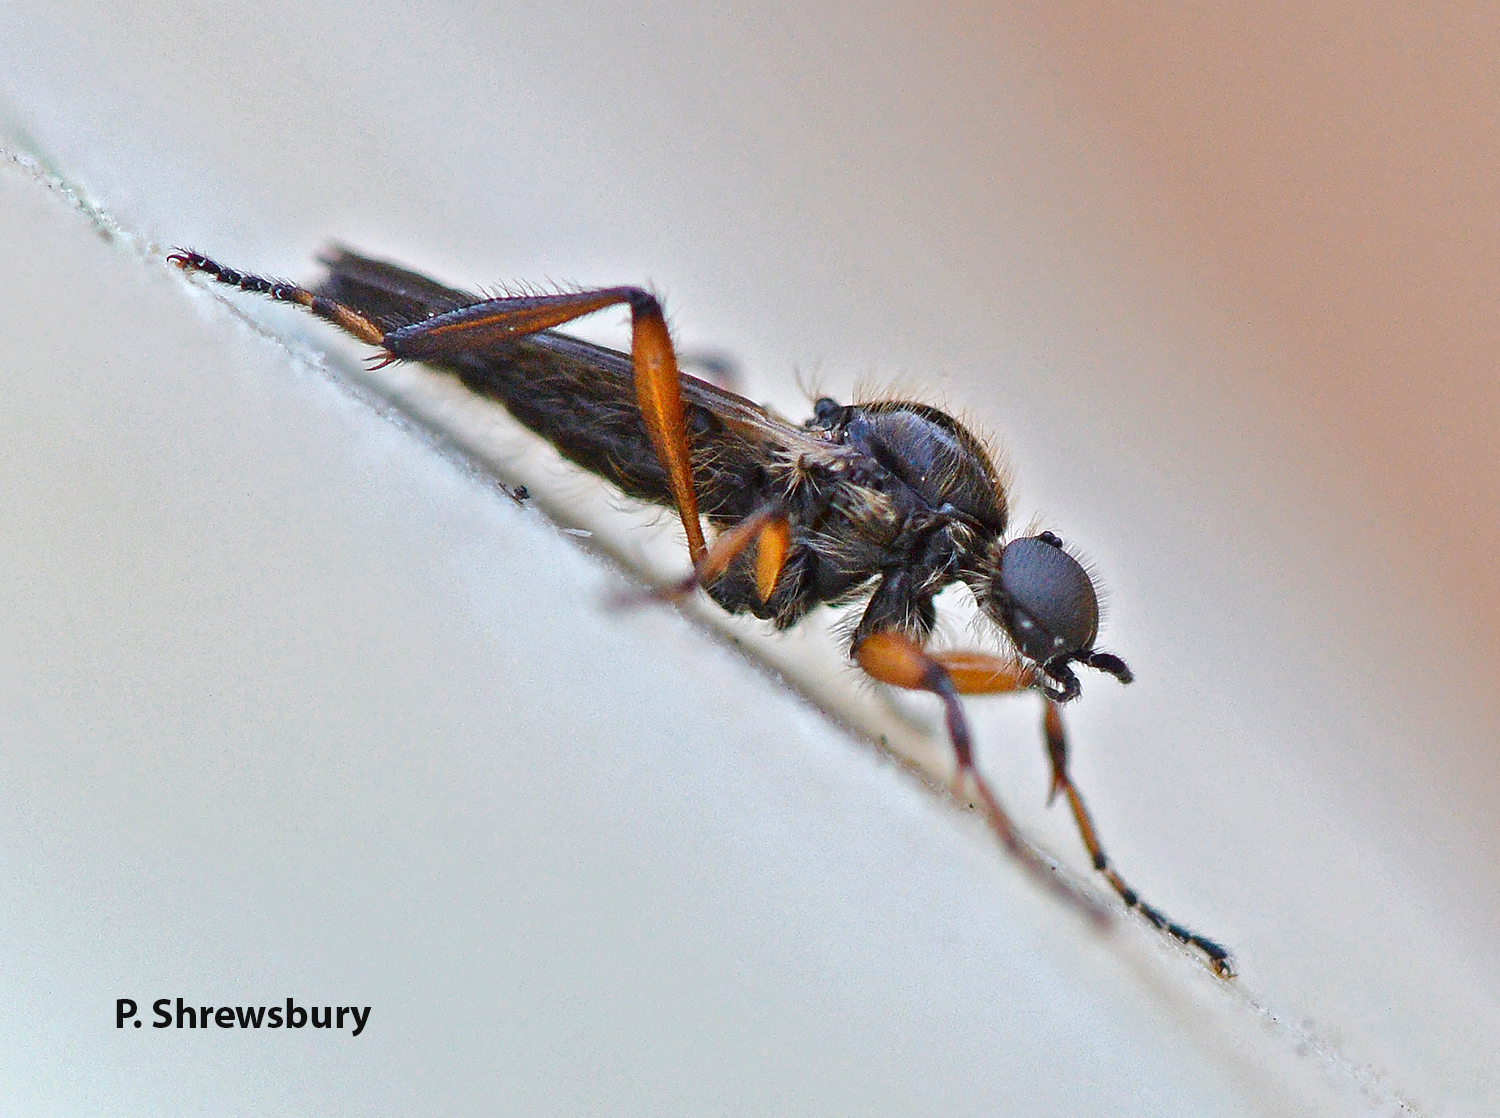 Large eyes of the male March fly provide excellent vision for chasing competitors and selecting mates.